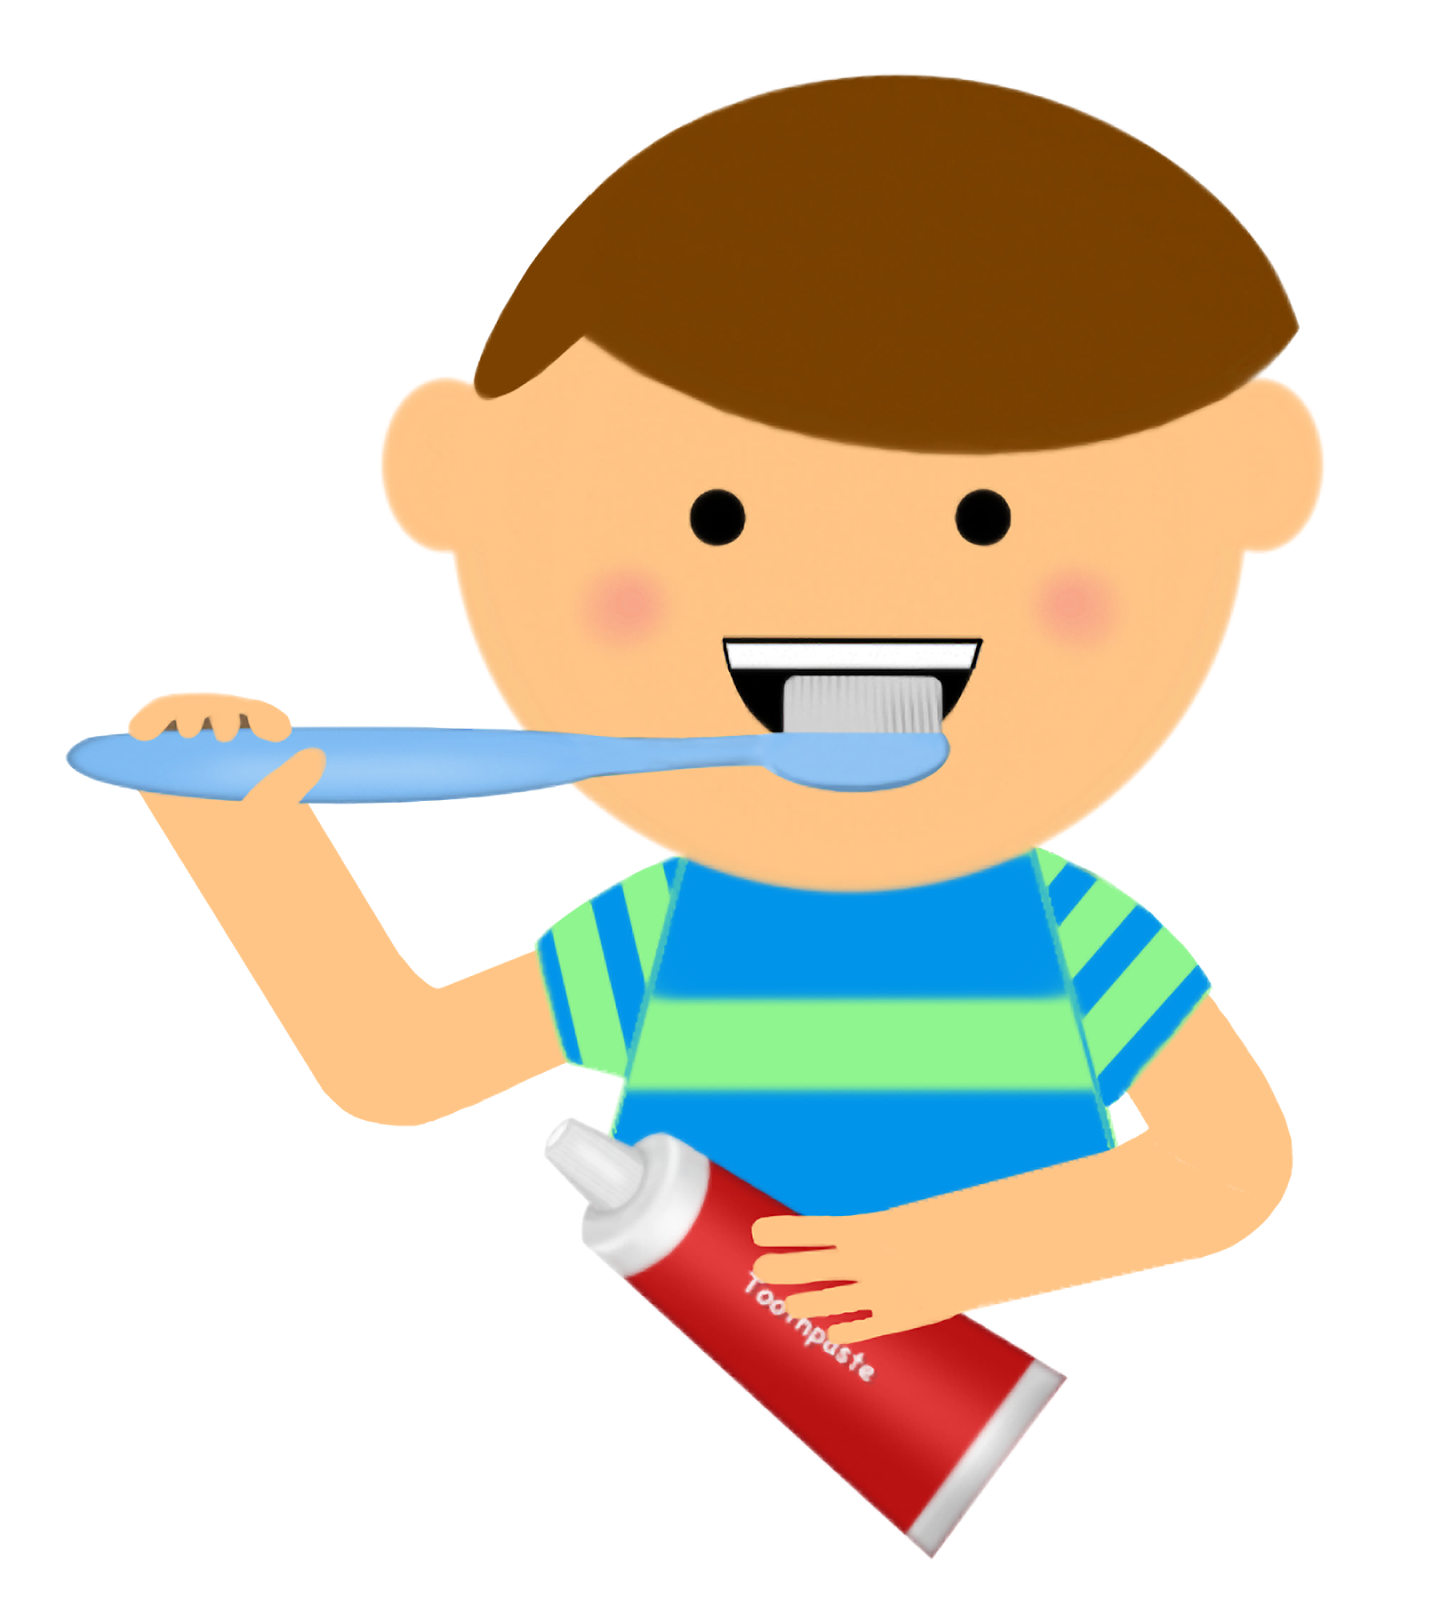 Surprise clipart child. Brushing teeth pictures cliparts